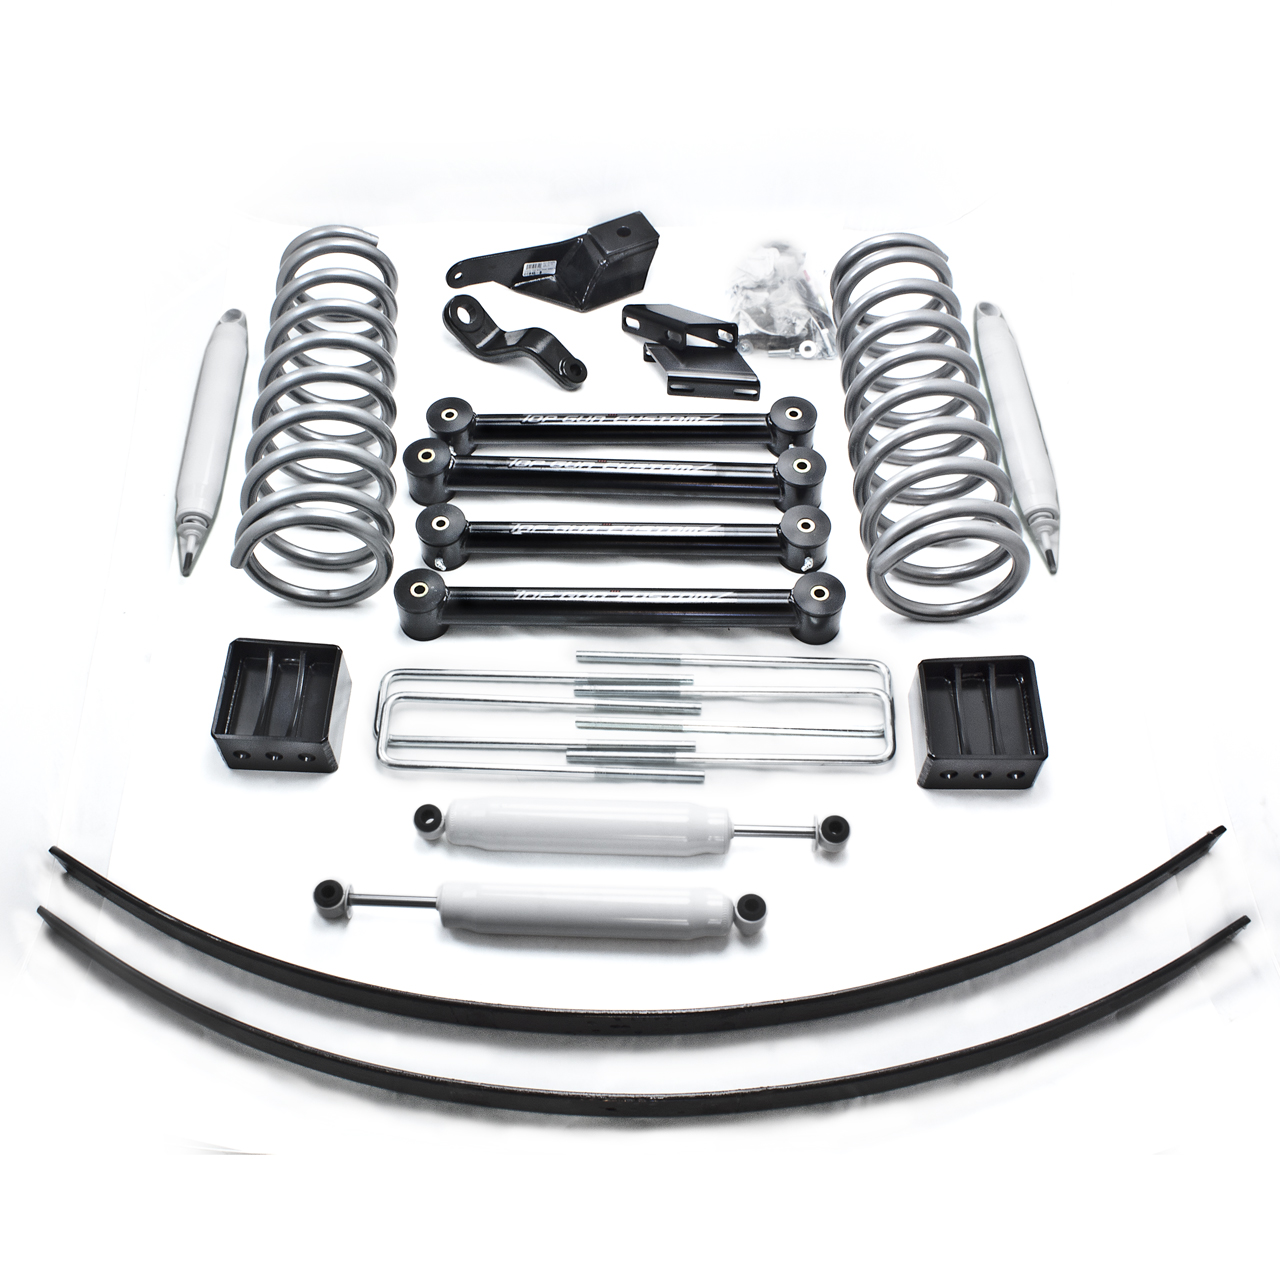 Dodge Lift Kit For 1995 Dodge Ram 2500 Truck Lift Kits